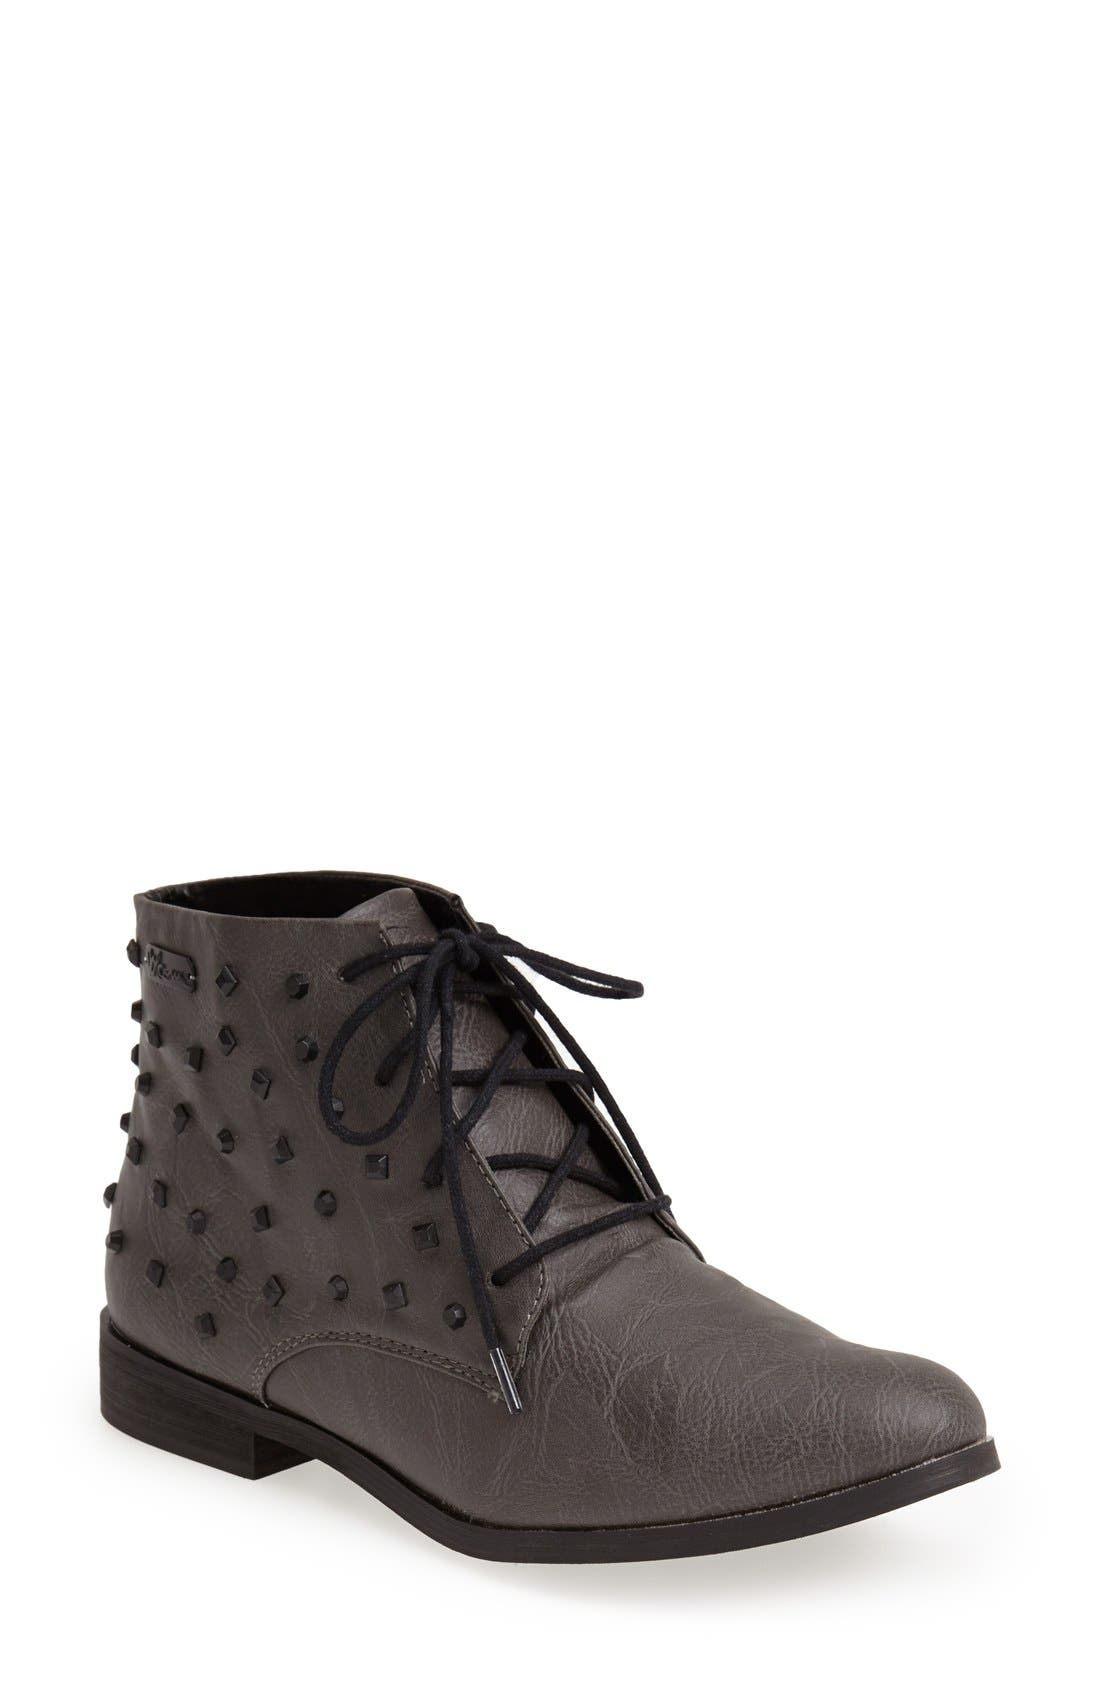 Alternate Image 1 Selected - Volcom 'Exhibition' Lace-Up Bootie (Women)